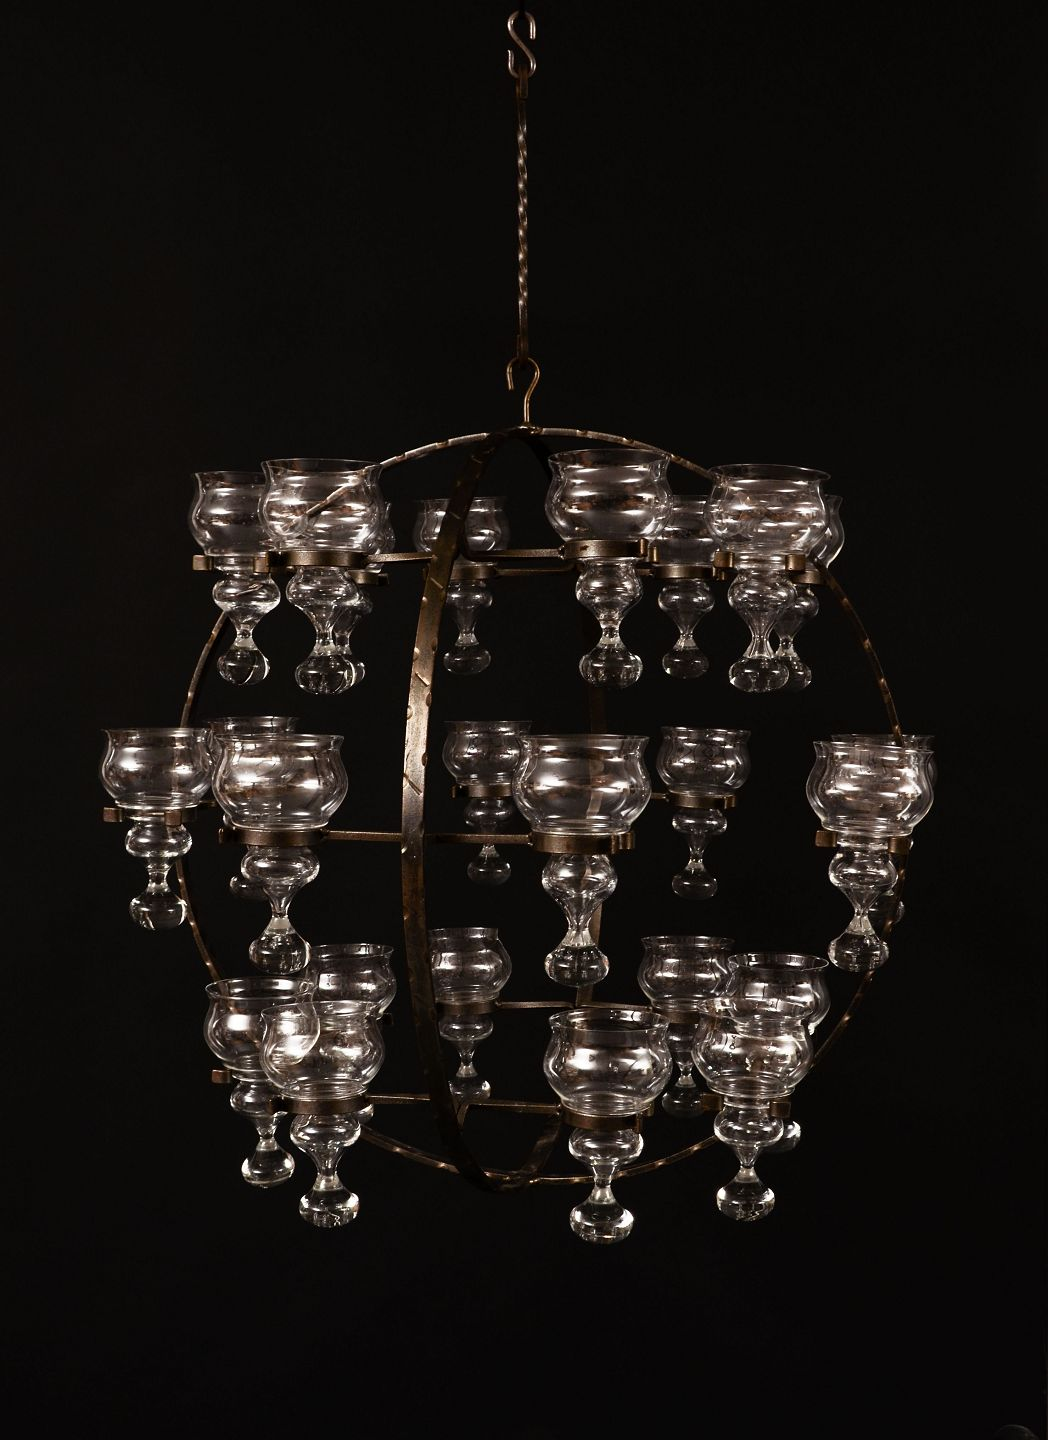 Monumental Spherical Ceiling Lamp Chandelier In Wrought Iron With Art Gl Domes For Candlelights